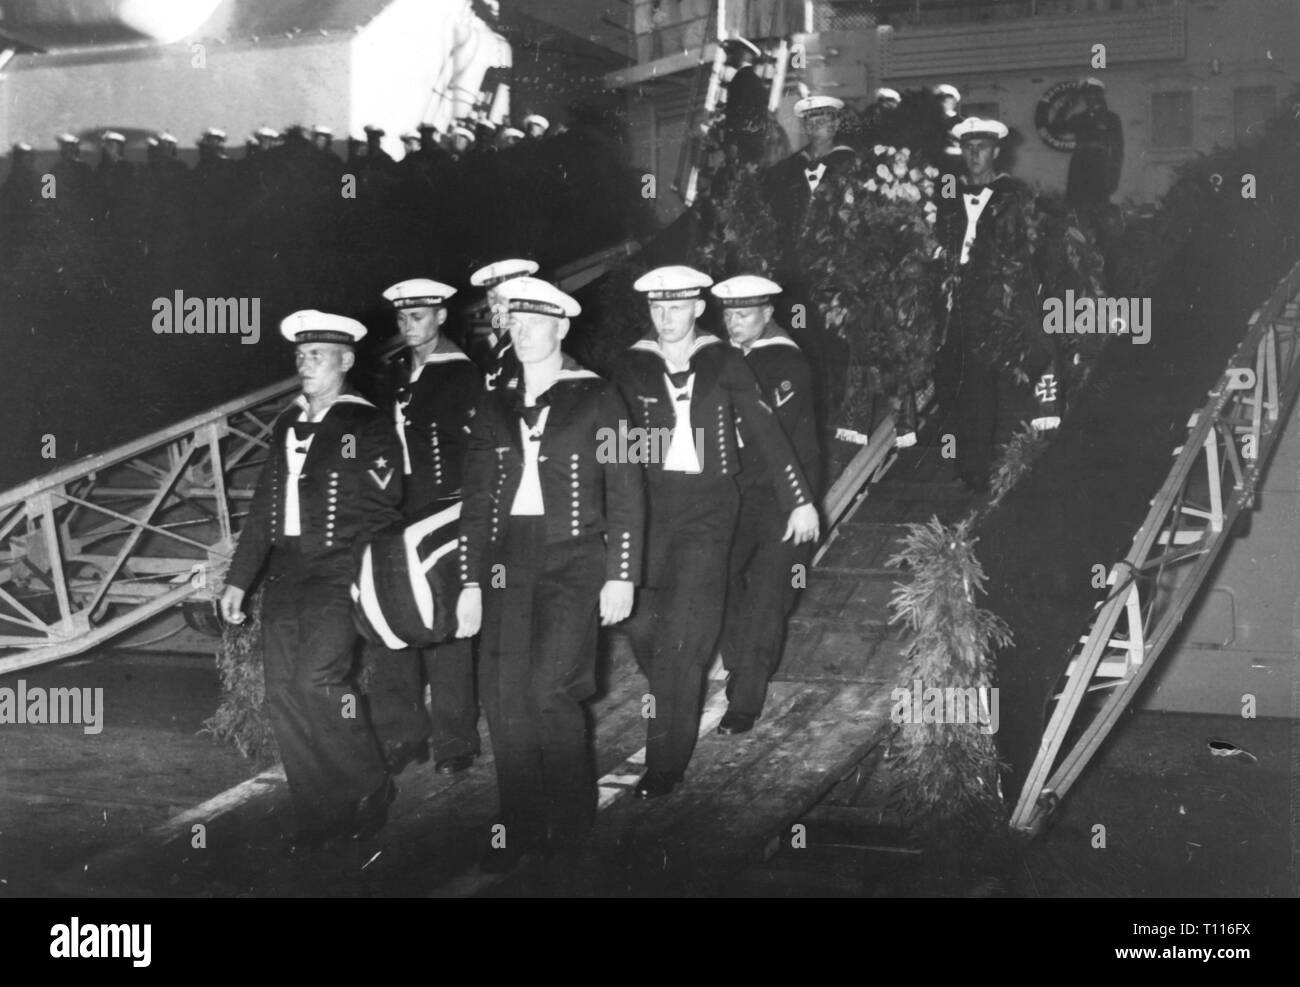 Spanish Civil War 1936 - 1939, bomb attack on the German ironclad 'Deutschland' at Ibiza on 29.5.1937, the dead seaman are carried from board, Wilhelmshaven, 16.6.1937, Additional-Rights-Clearance-Info-Not-Available - Stock Image